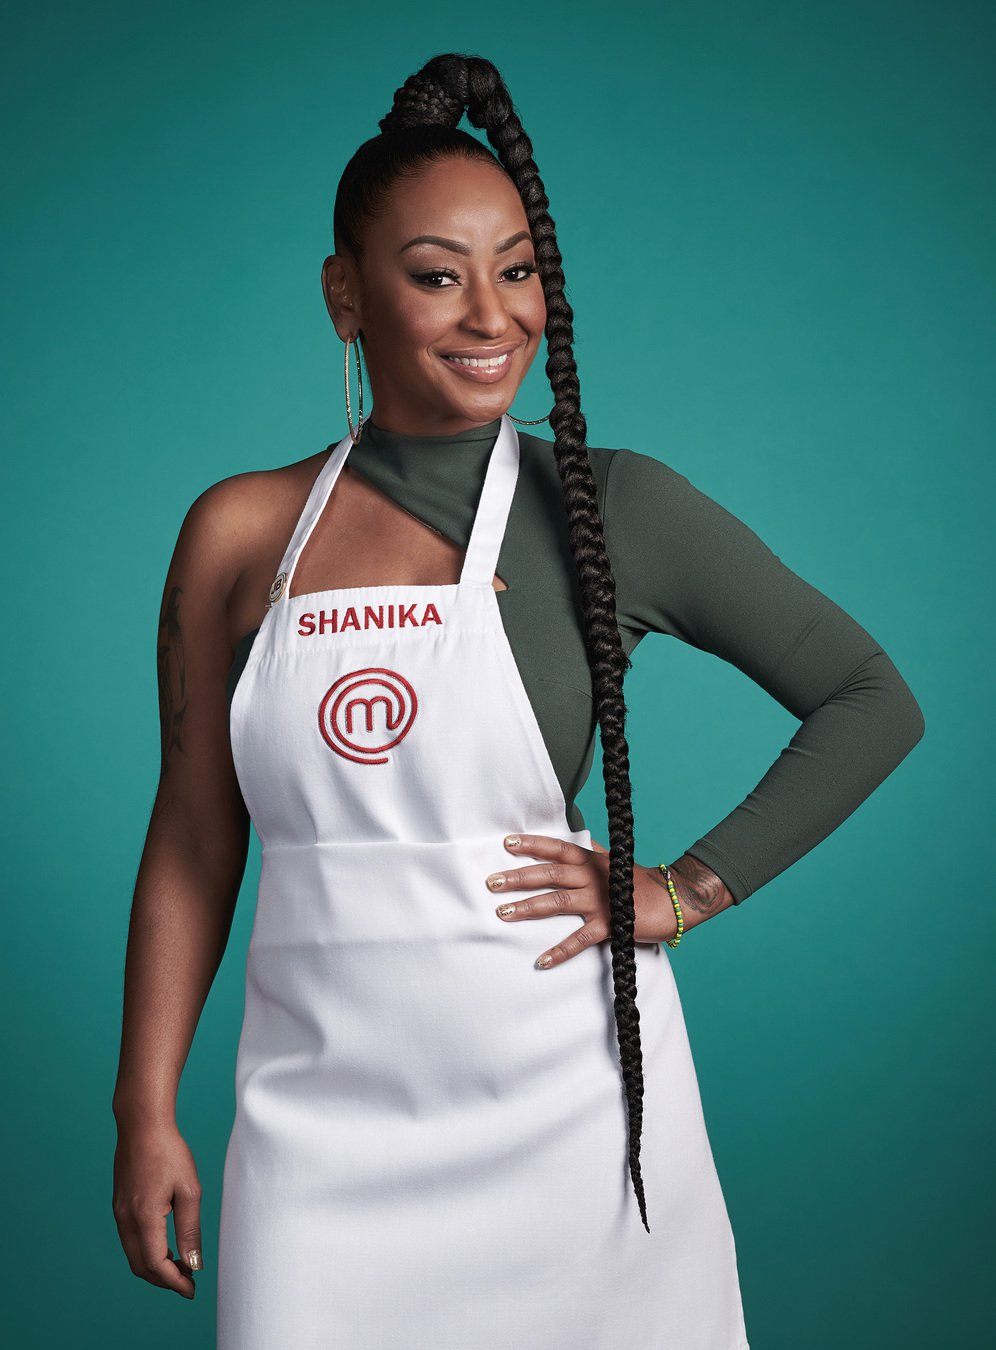 MasterChef images Shanika Patterson (Season Nine) HD wallpaper and background photos